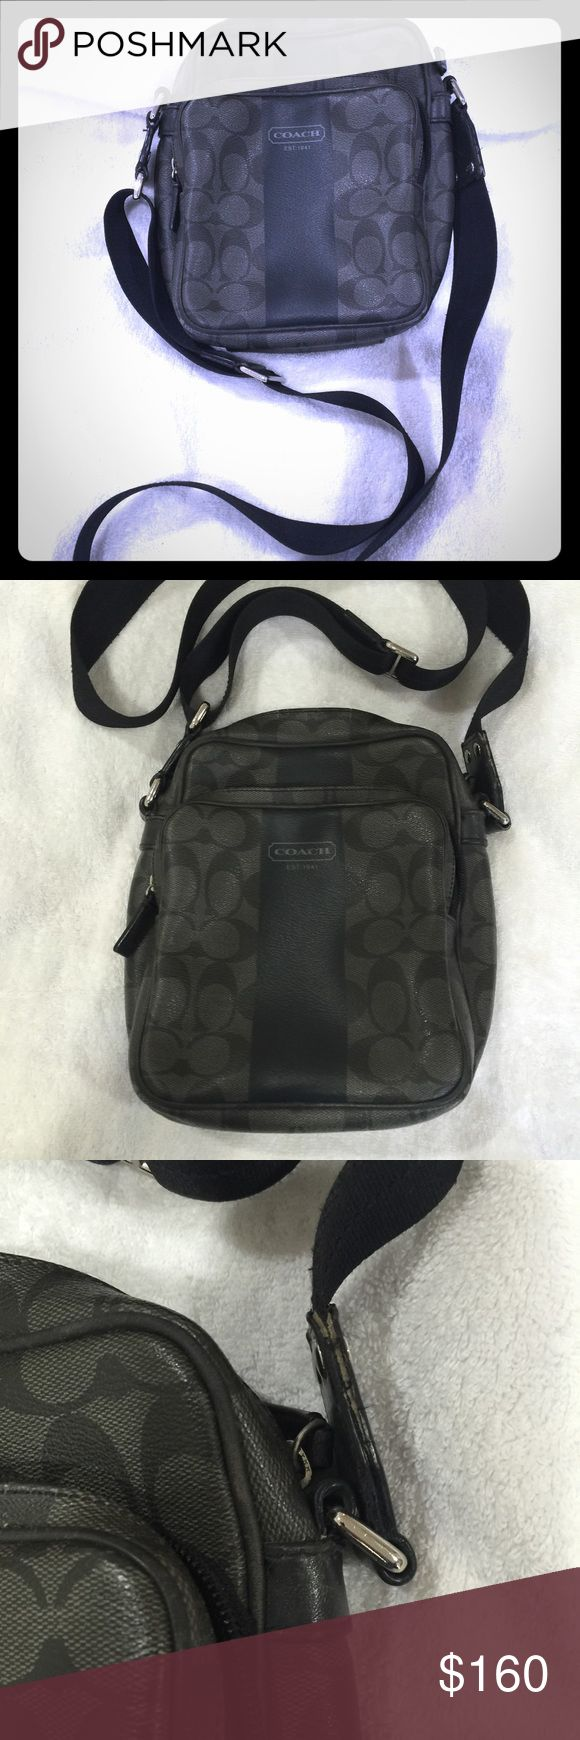 Coach messenger bag Coach messenger bag Coach Bags Travel Bags